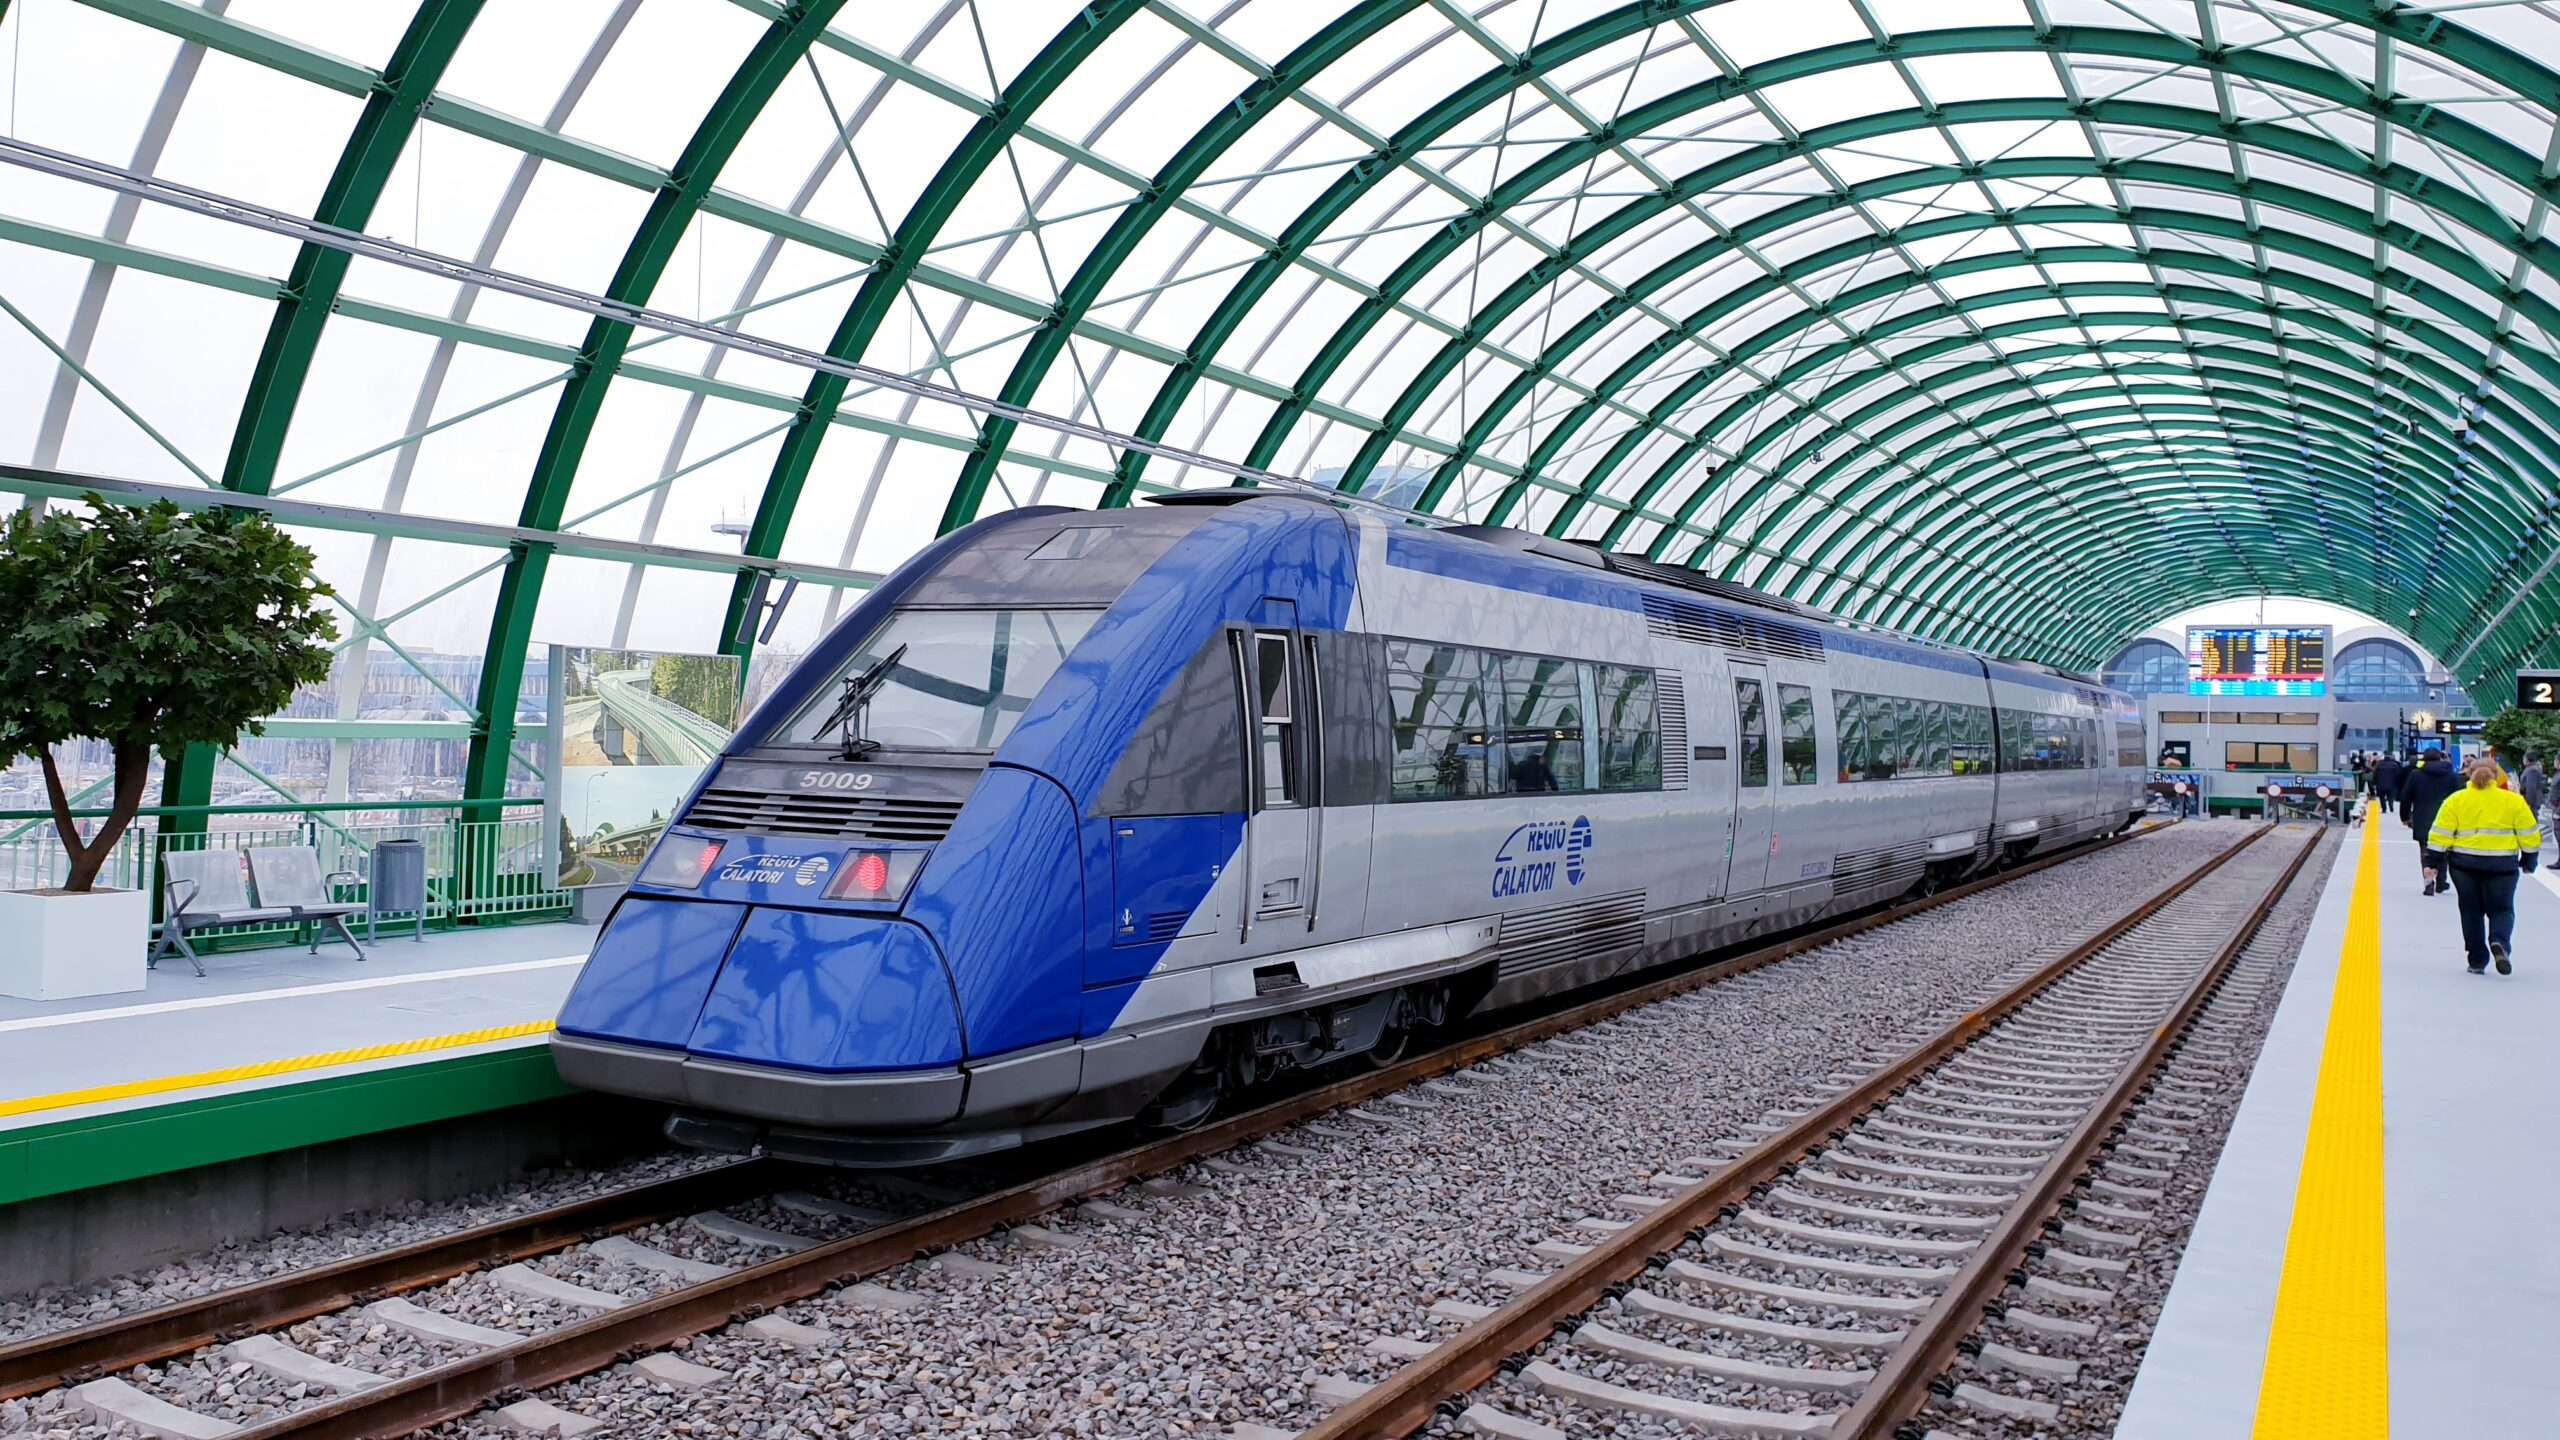 A train at Bucharest's new airport station